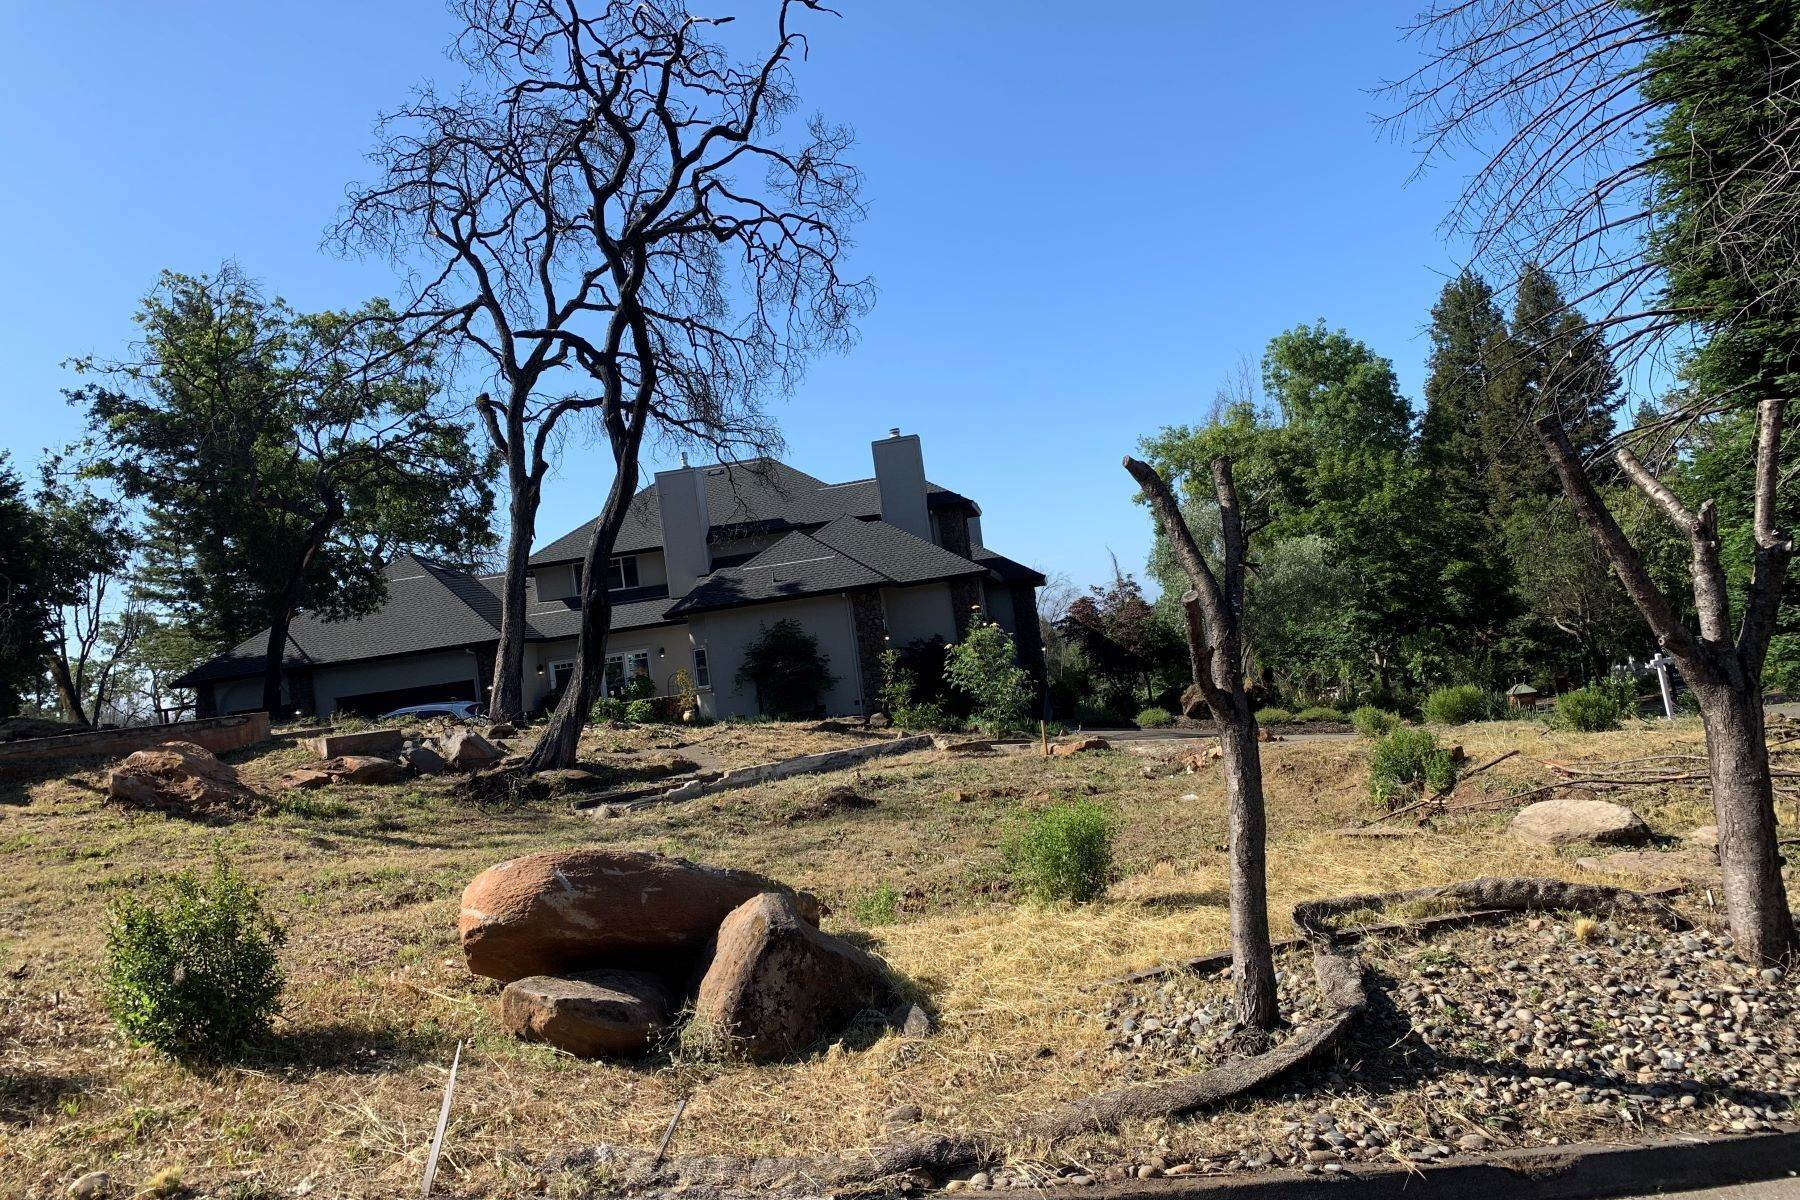 Property for Sale at Lot in Coveted Stone Creek development 2000 Bent Tree Pl Santa Rosa, California 95404 United States